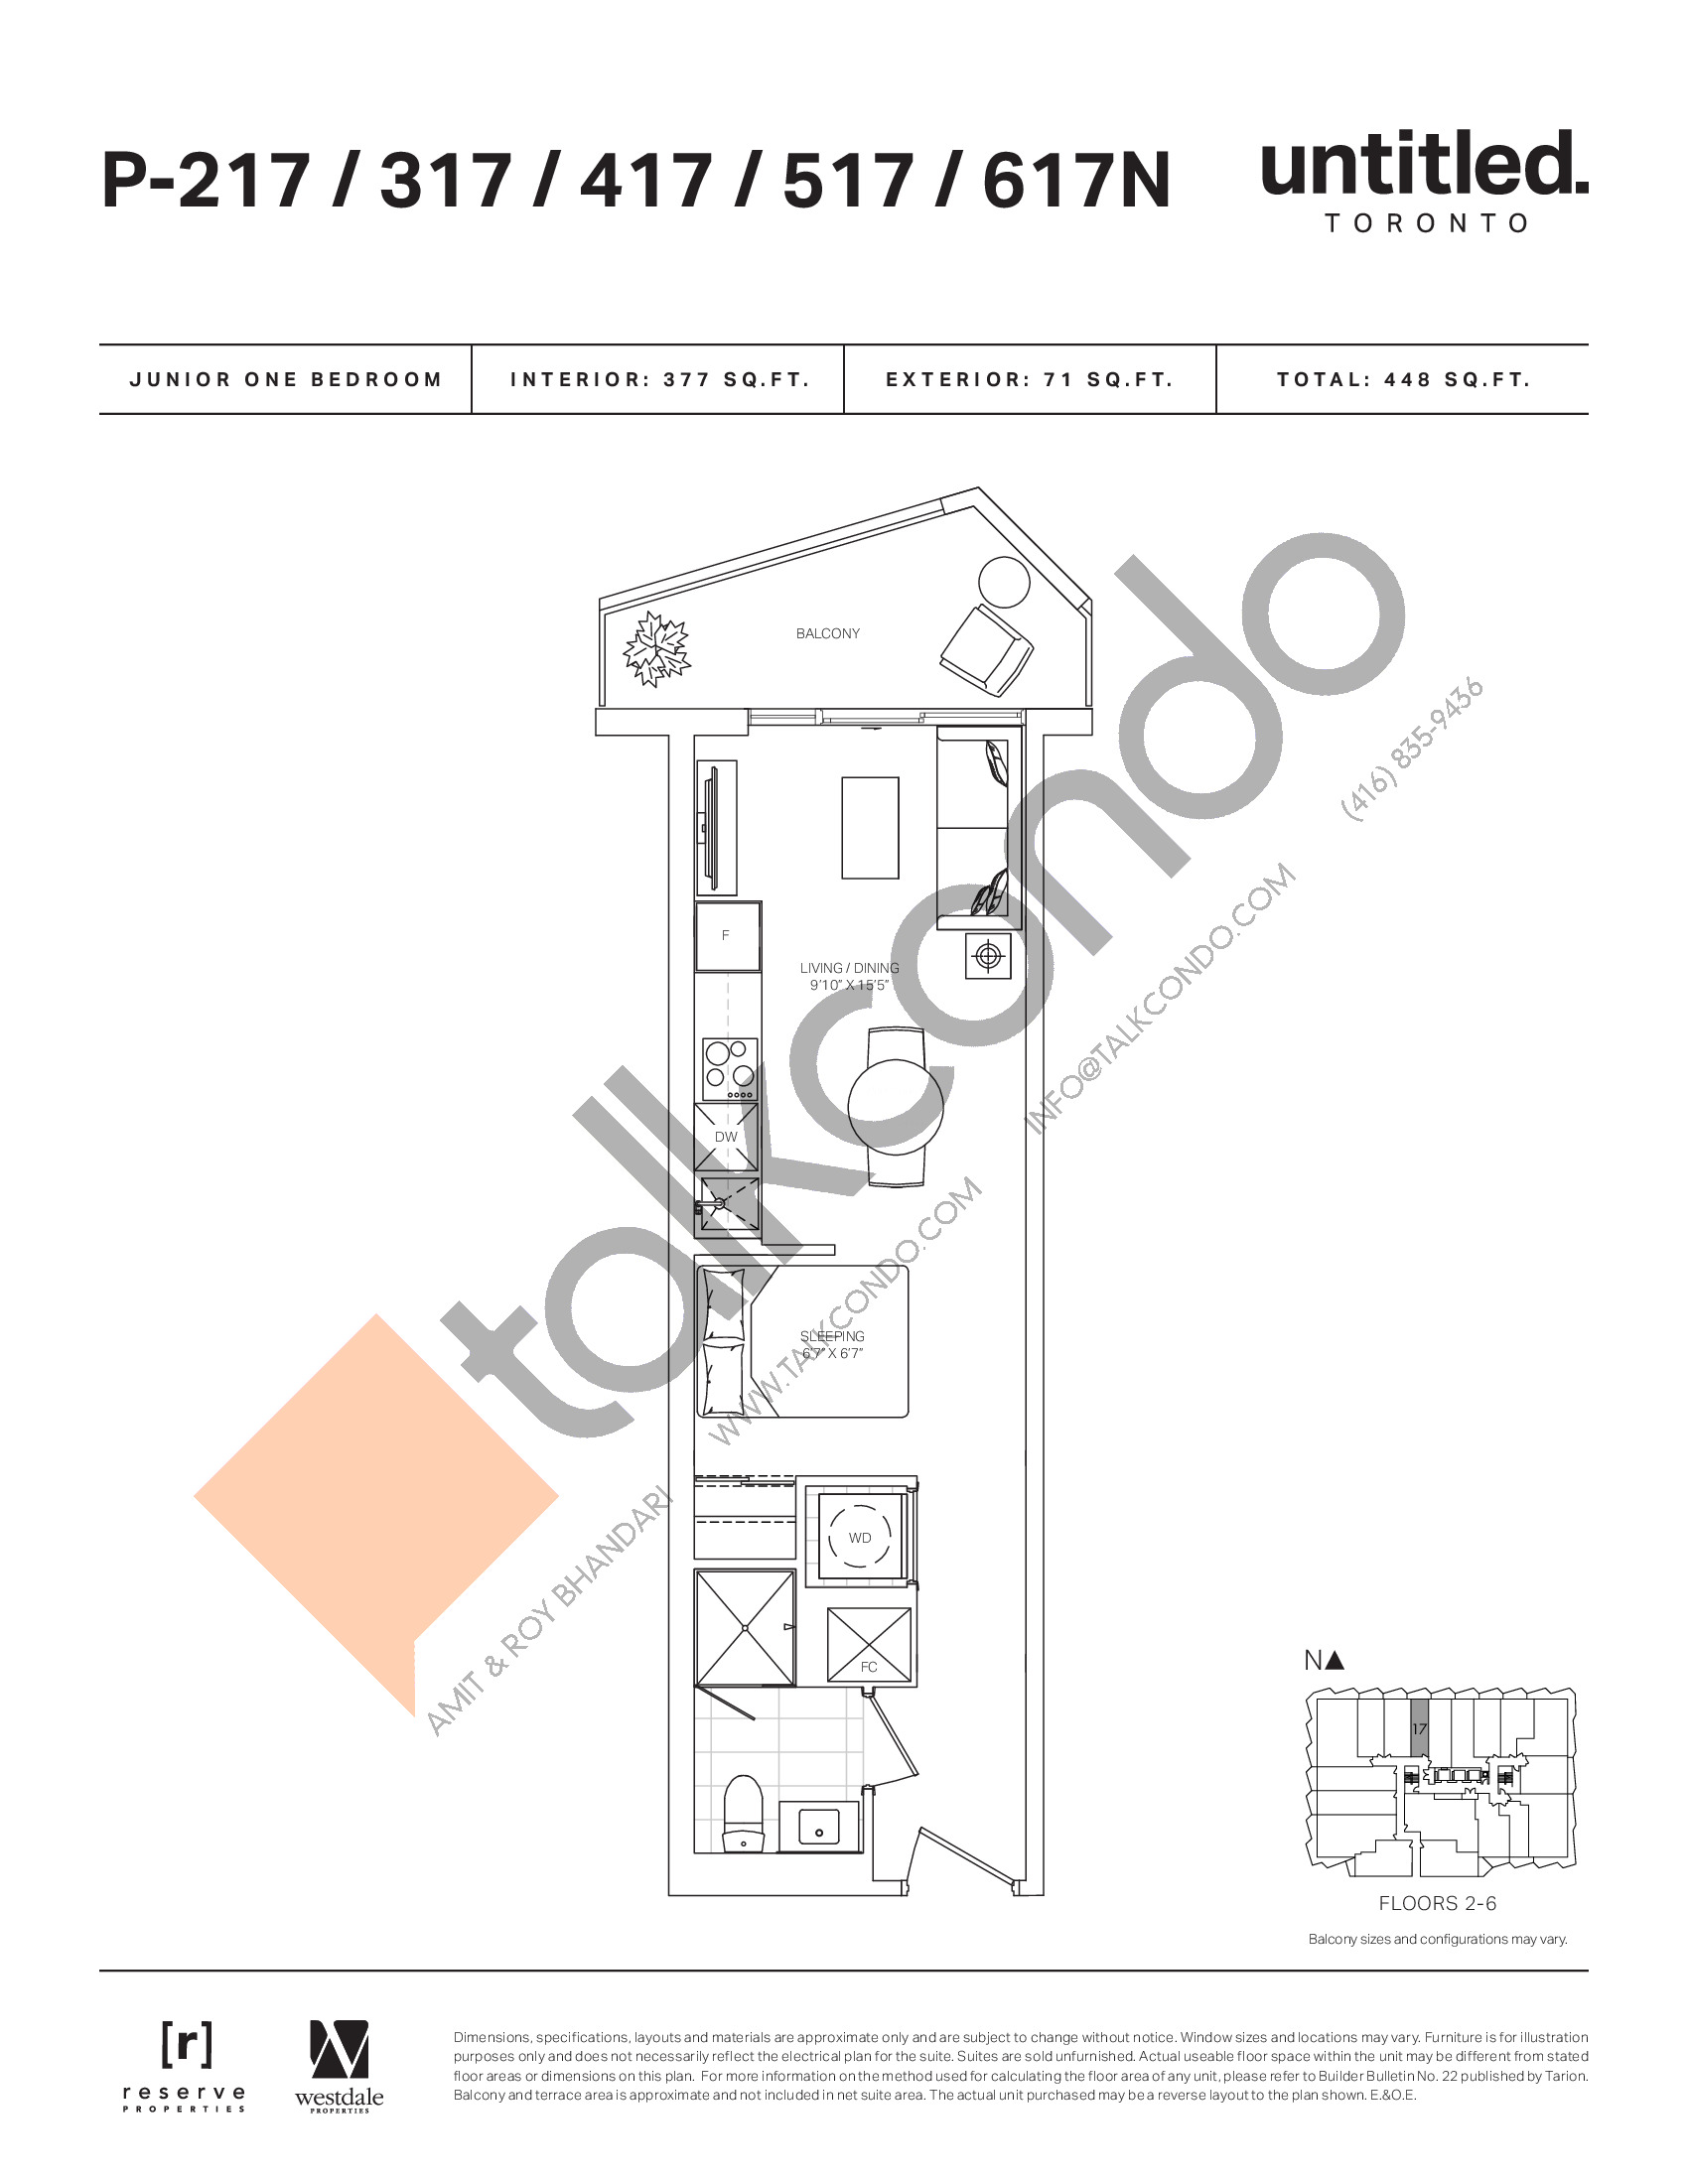 P-217/317/417/517/617N Floor Plan at Untitled North Tower Condos - 377 sq.ft